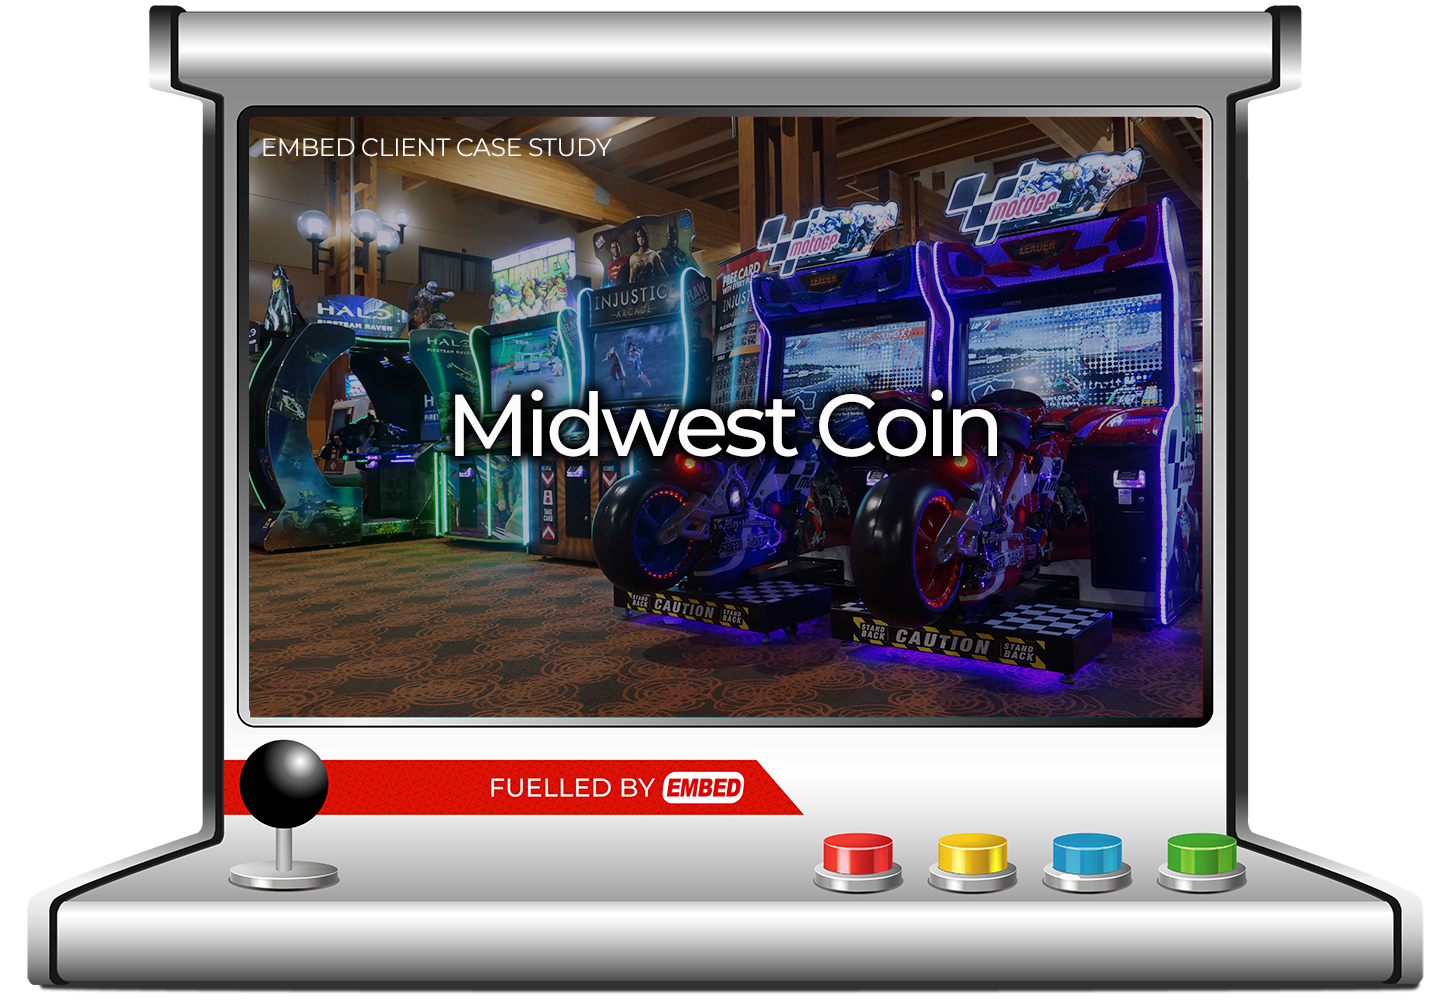 em-img-casestudy-midwestcoin-float1